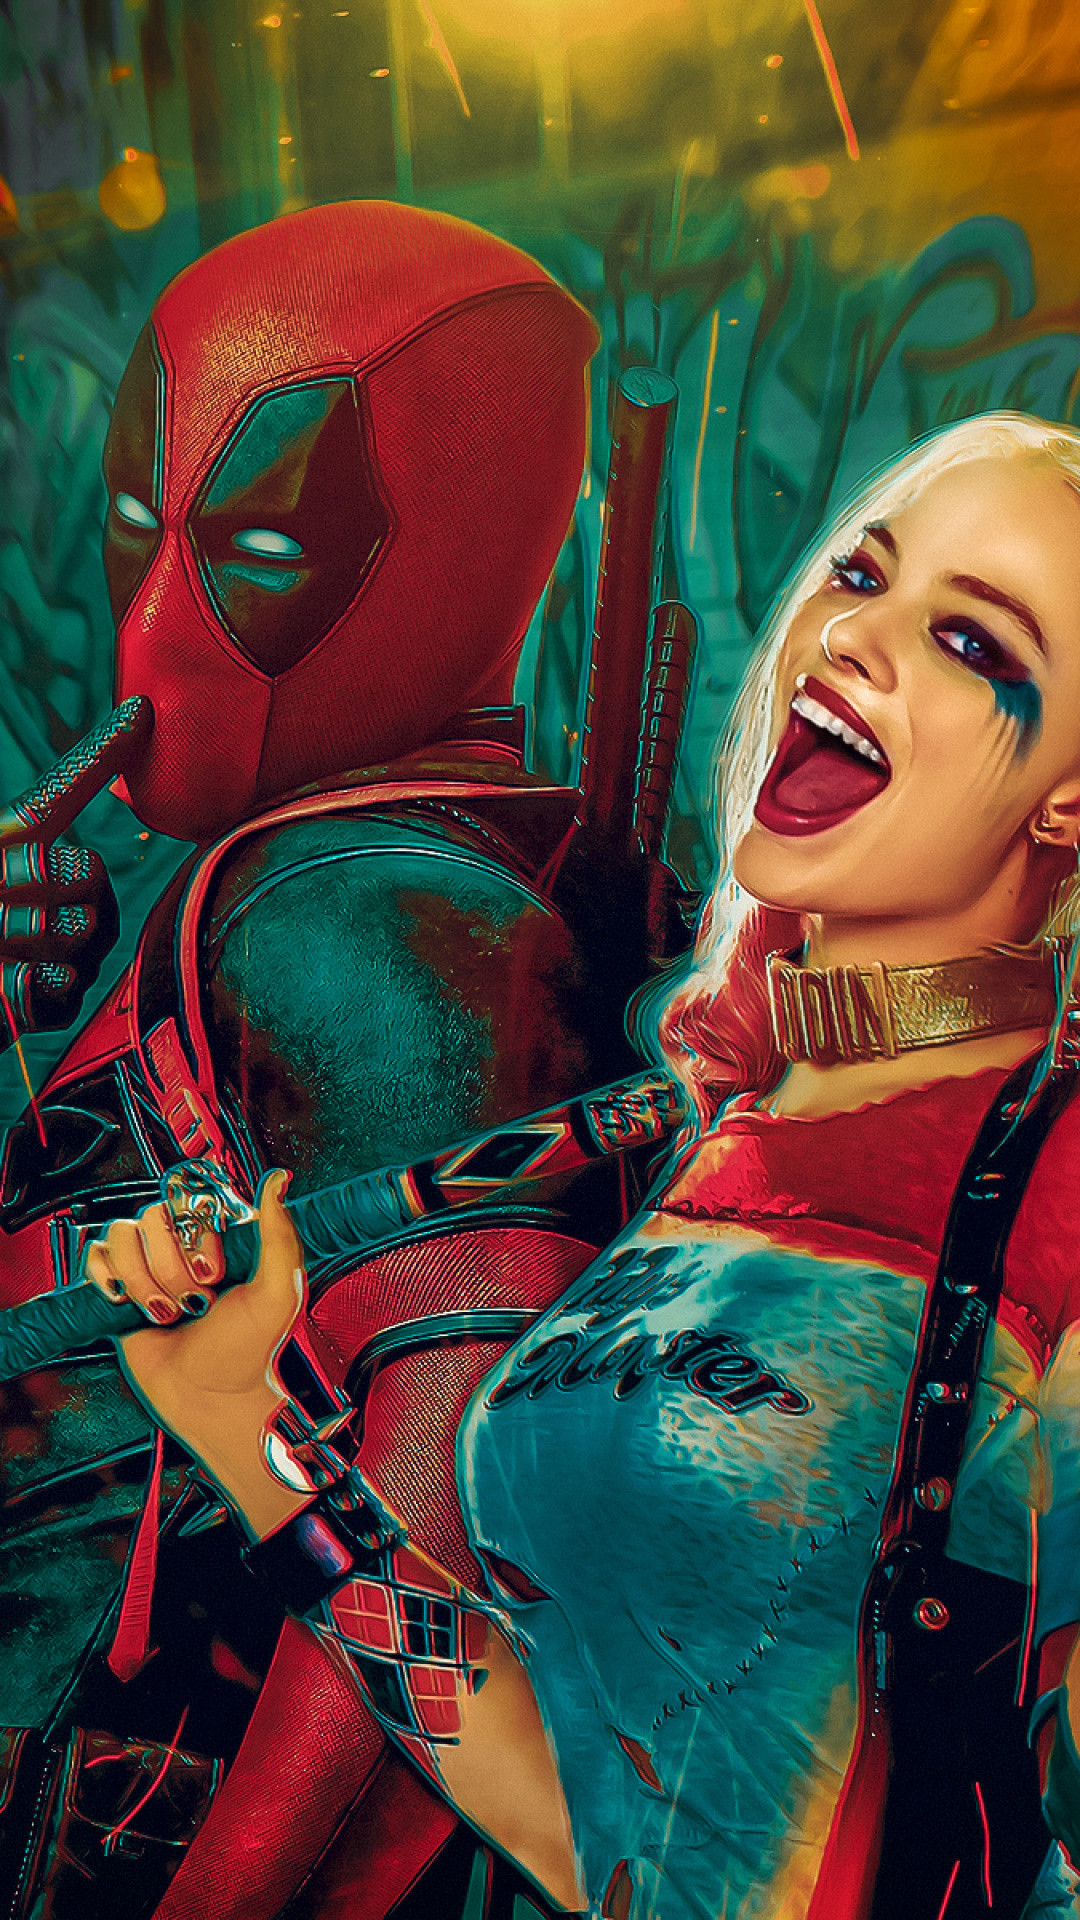 Harley Quinn Iphone 6 Wallpaper HD | Cosplay iPhone Wallpapers .